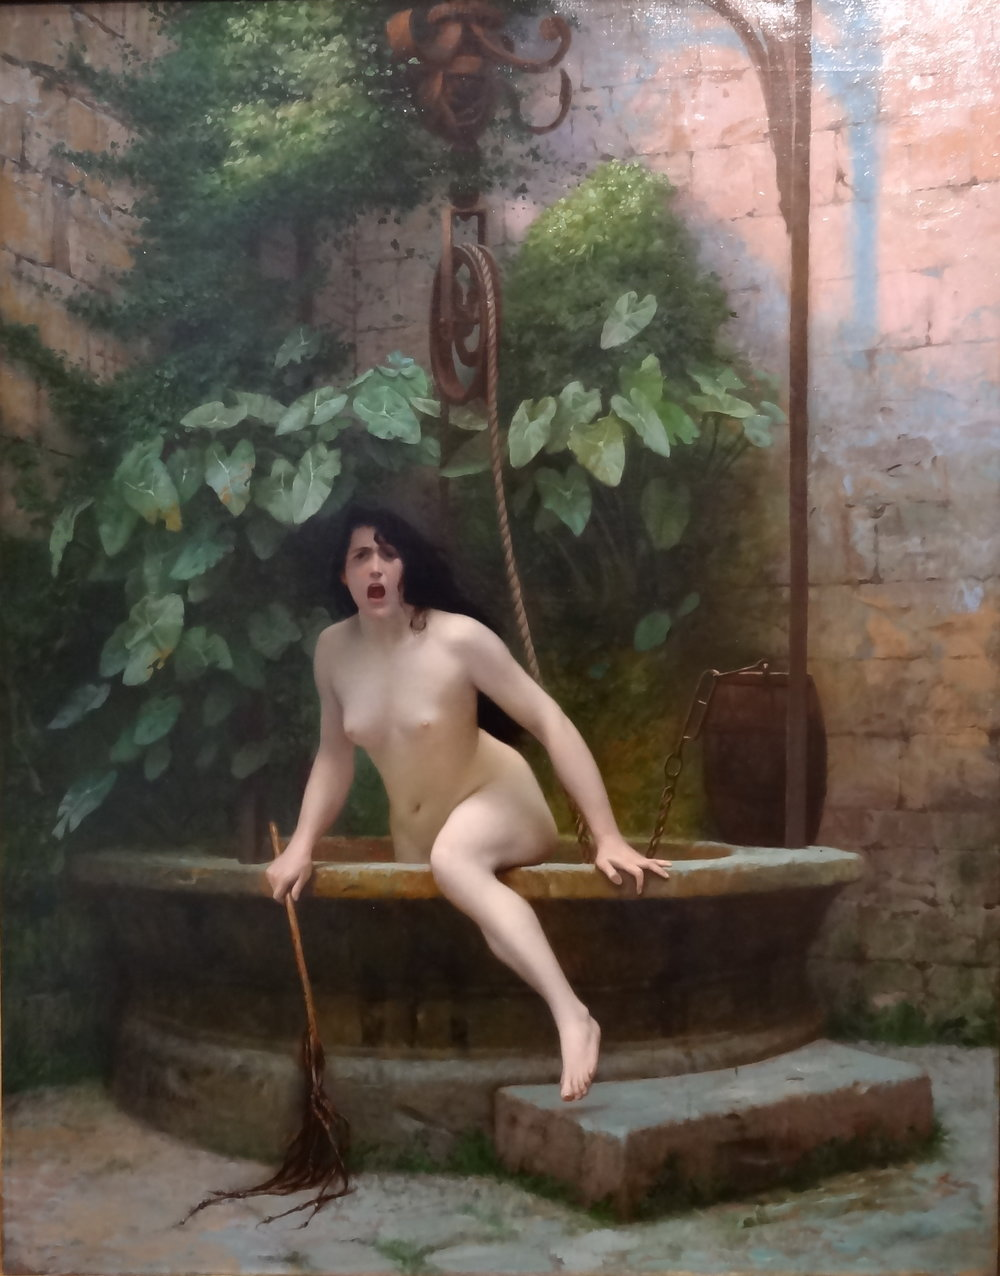 Truth Coming Out Of Her Well - 1896 painting by the French artist Jean-Léon Gérôme.